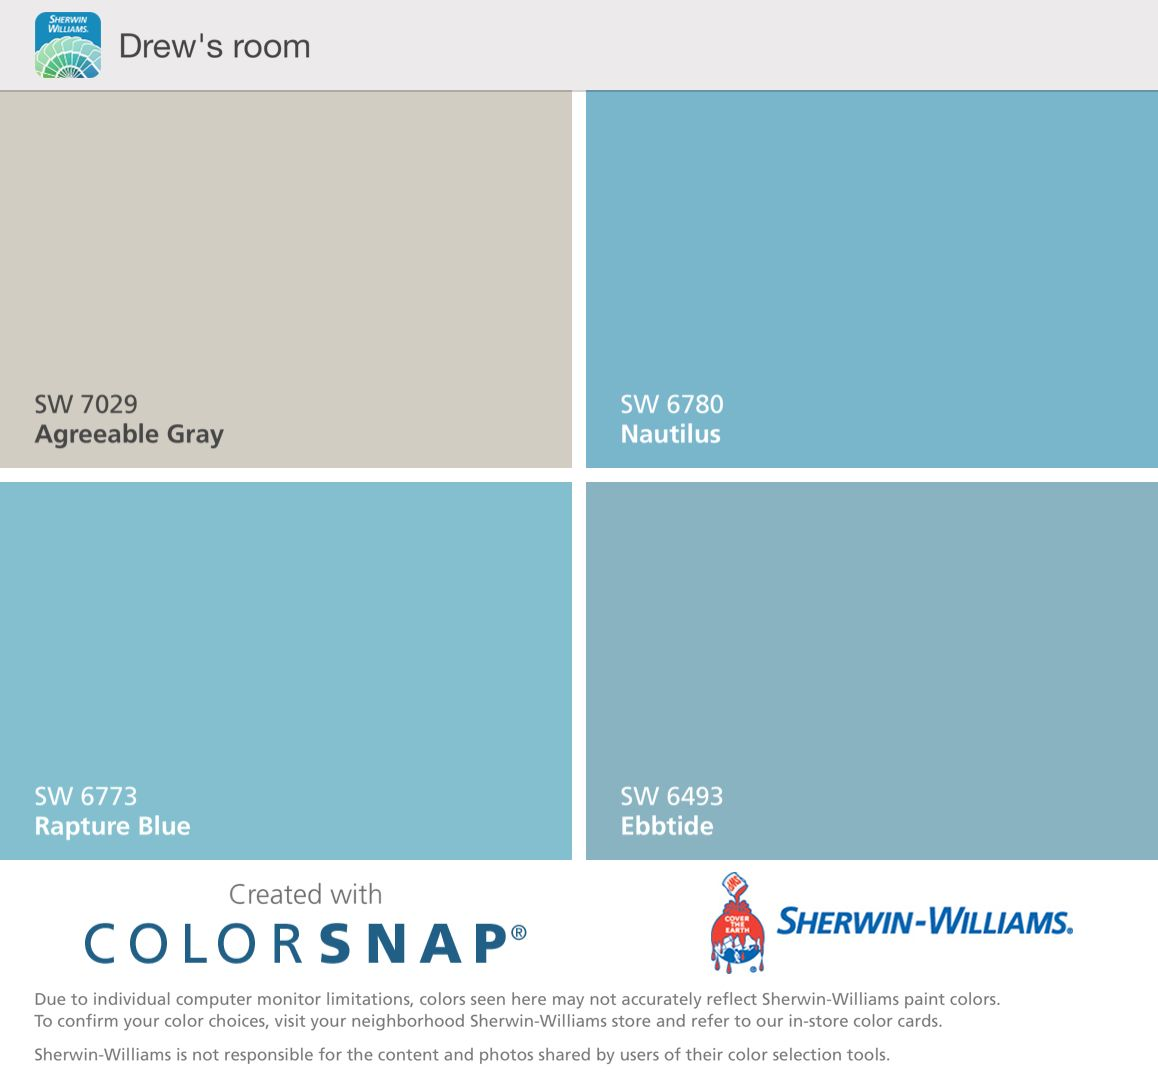 Our Room Sw Blues And Agreeable Gray Sherwin Williams Paint Colors Sherwin William Paint Sherwin Williams Store [ 1080 x 1158 Pixel ]